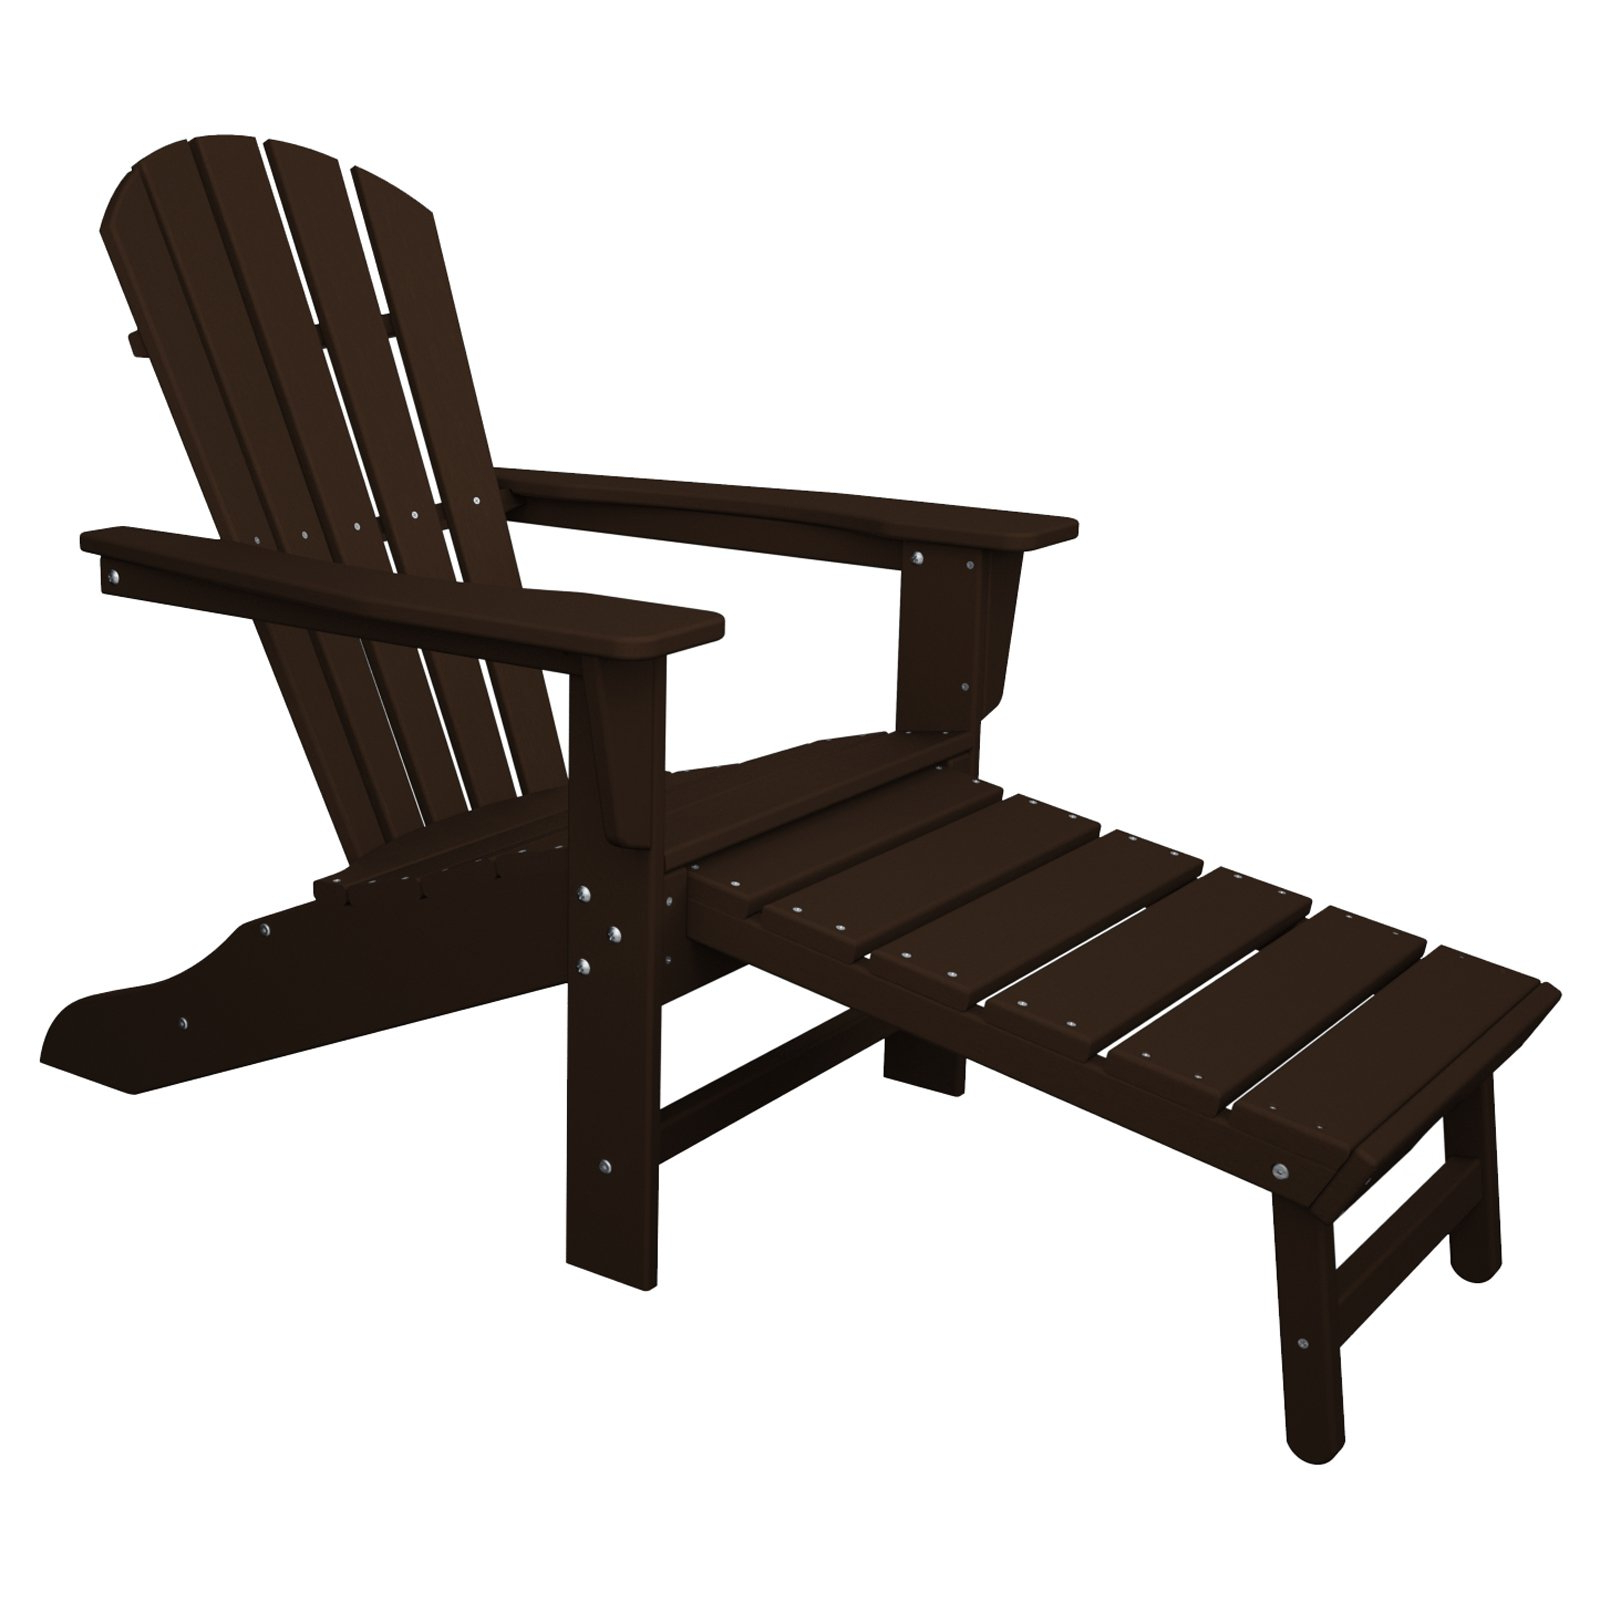 Outdoor Polywoodâ® South Beach Ultimate Adirondack Chair In Well Liked Mahogany Adirondack Chairs With Ottoman (View 10 of 25)